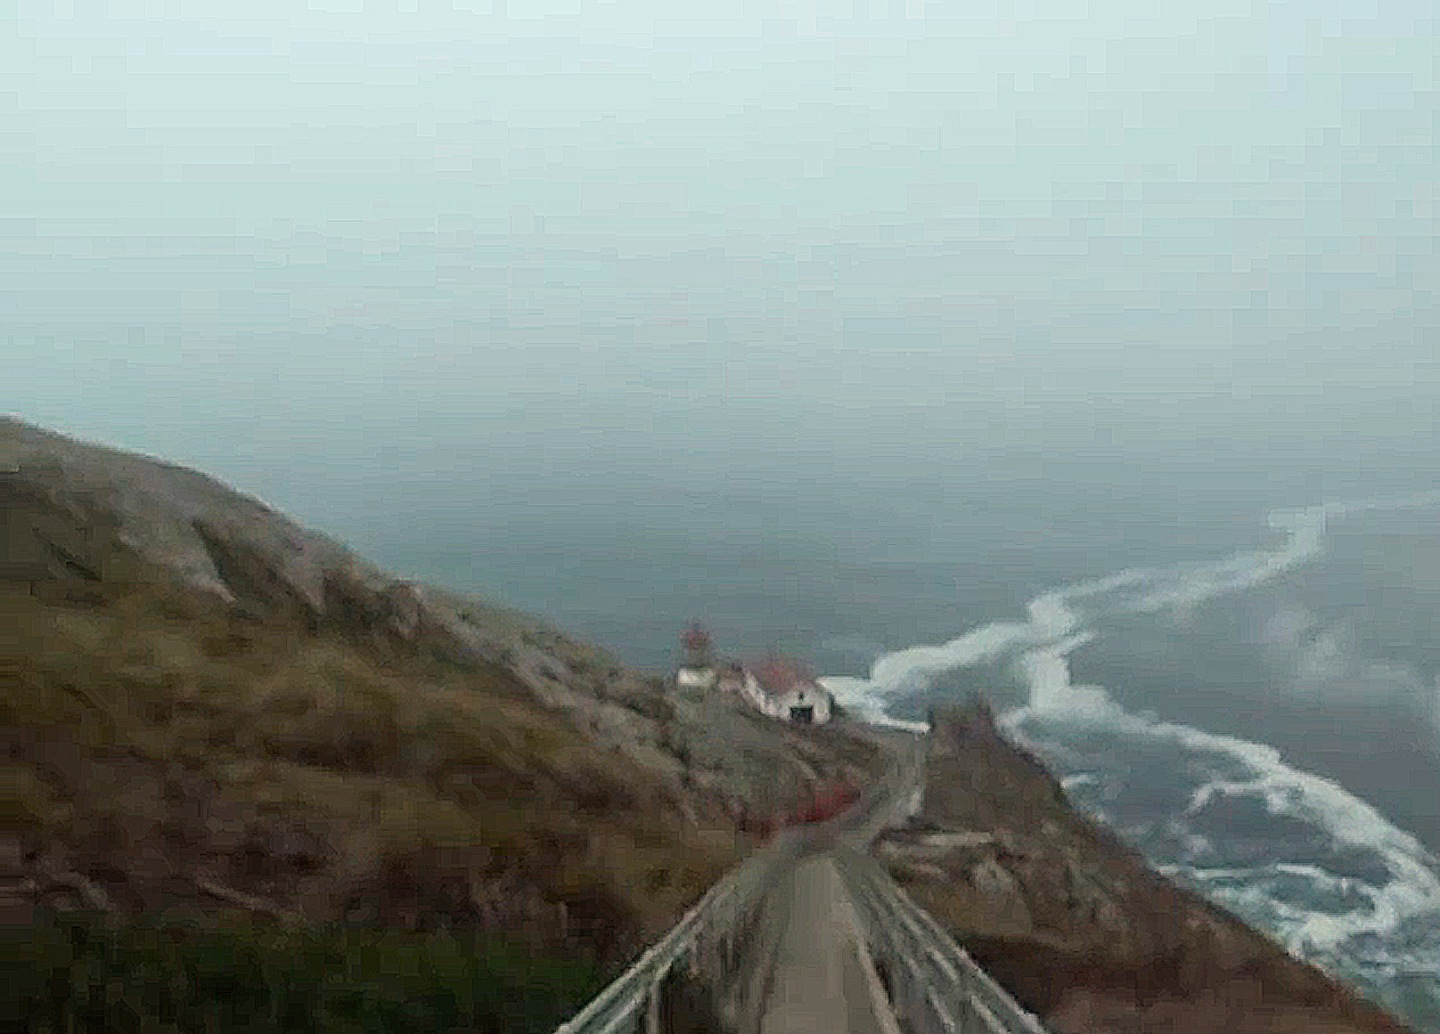 Tracking down John Carpenter's The Fog (1980) Point Reyes Lighthouse used as movie location photo and videos by David J Rodger